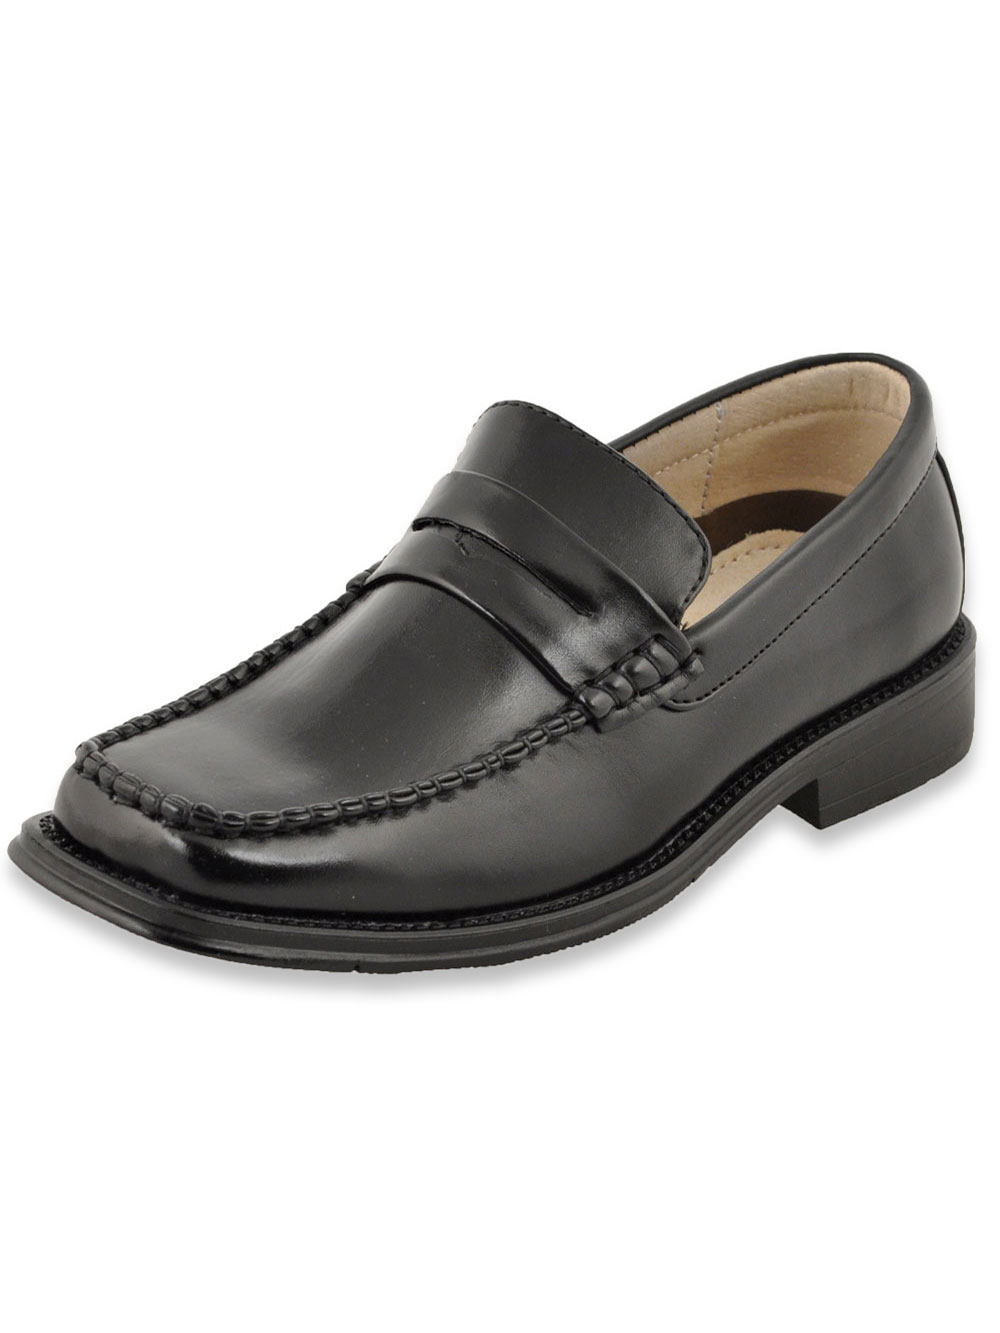 Dress Shoes Penny Loafers